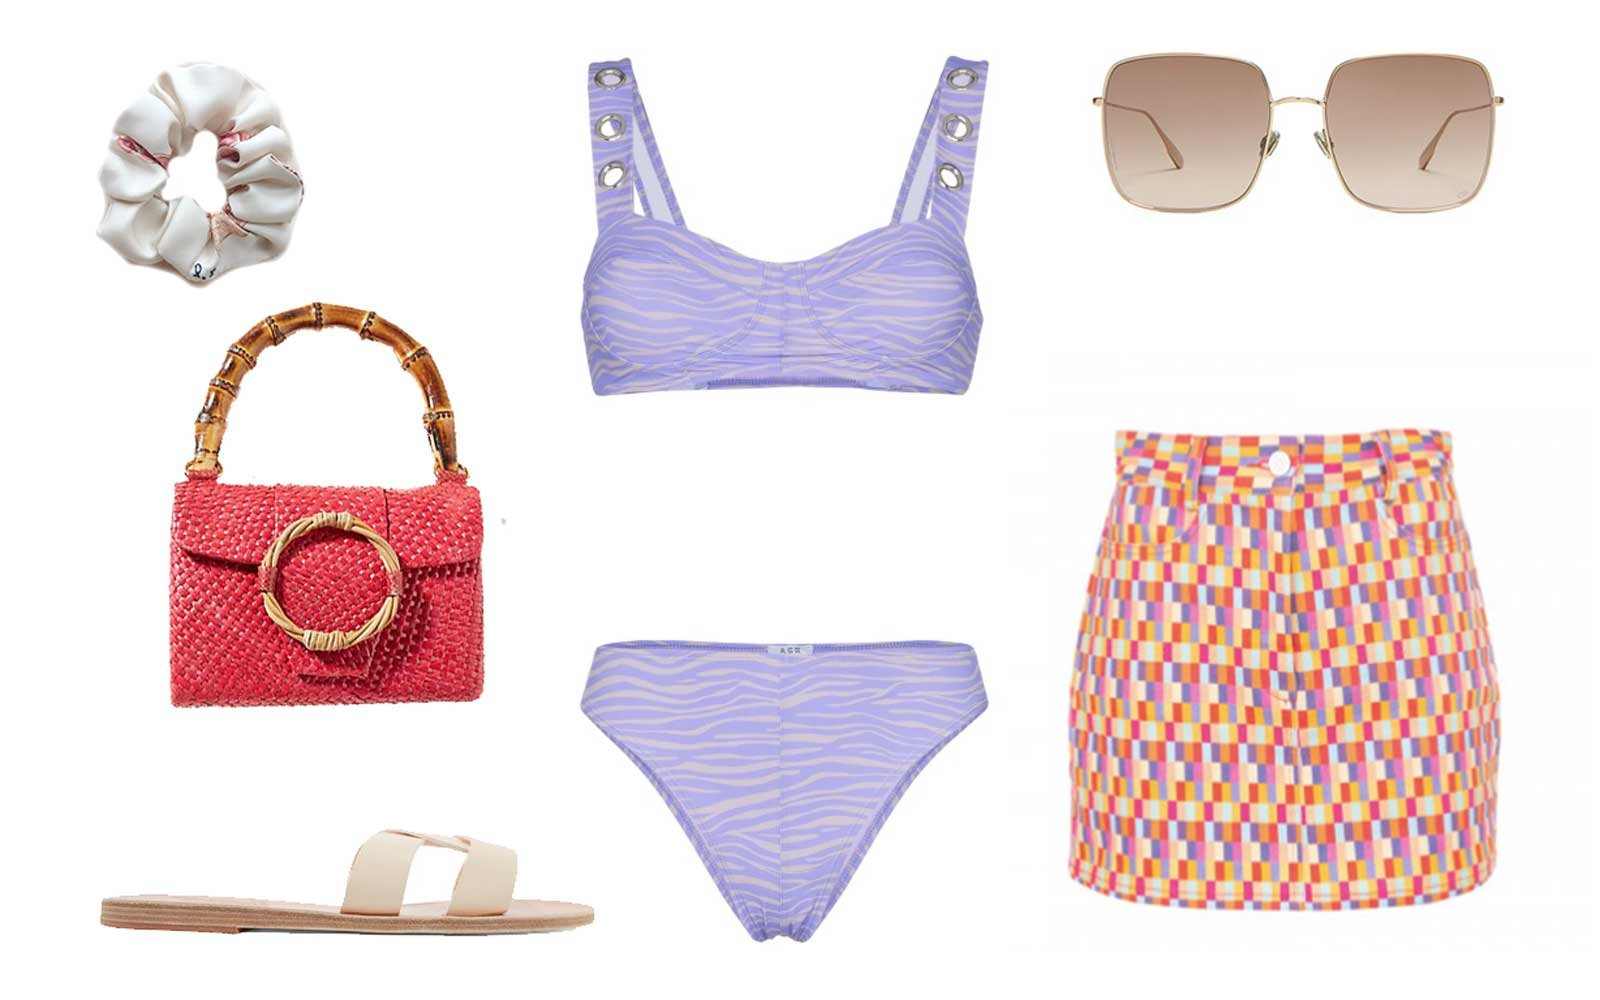 06f69163d9 5 Chic Beach Outfits That Go Beyond Cover-ups and Flip-flops ...